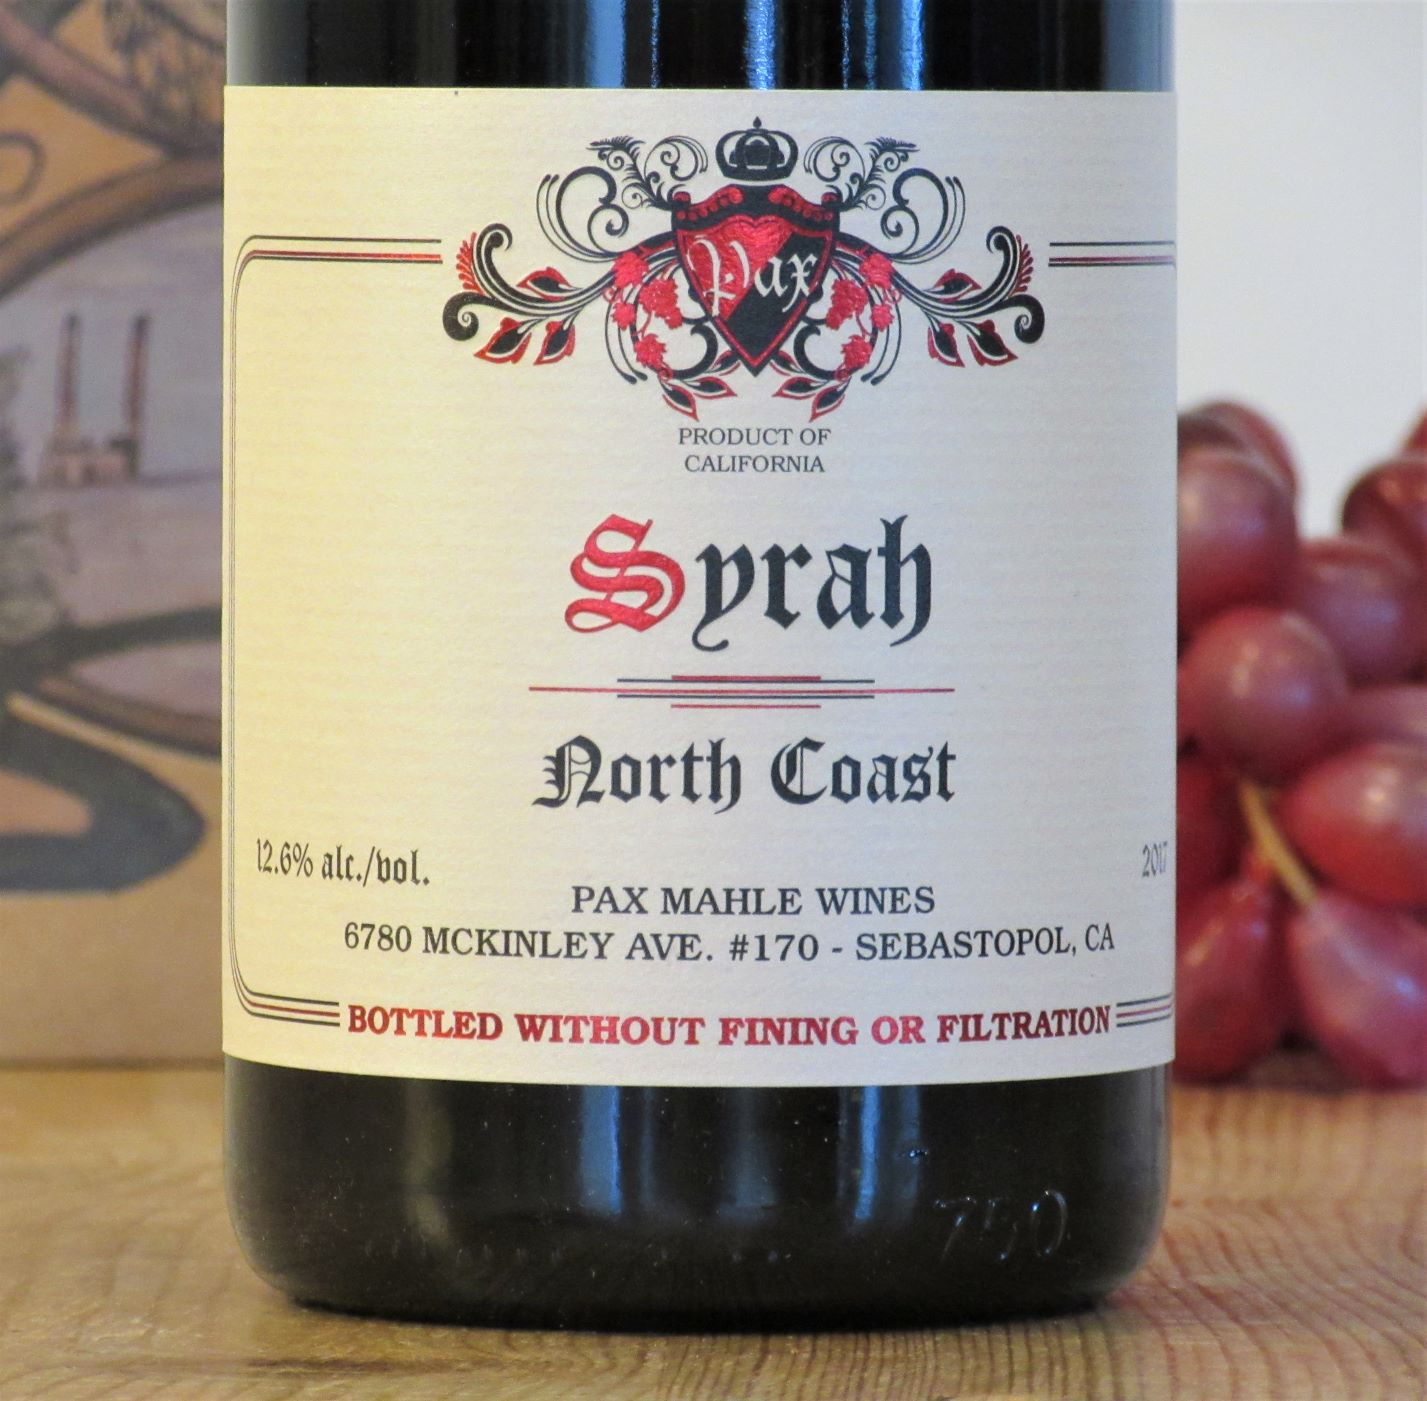 Pax Mahle North Coast Syrah